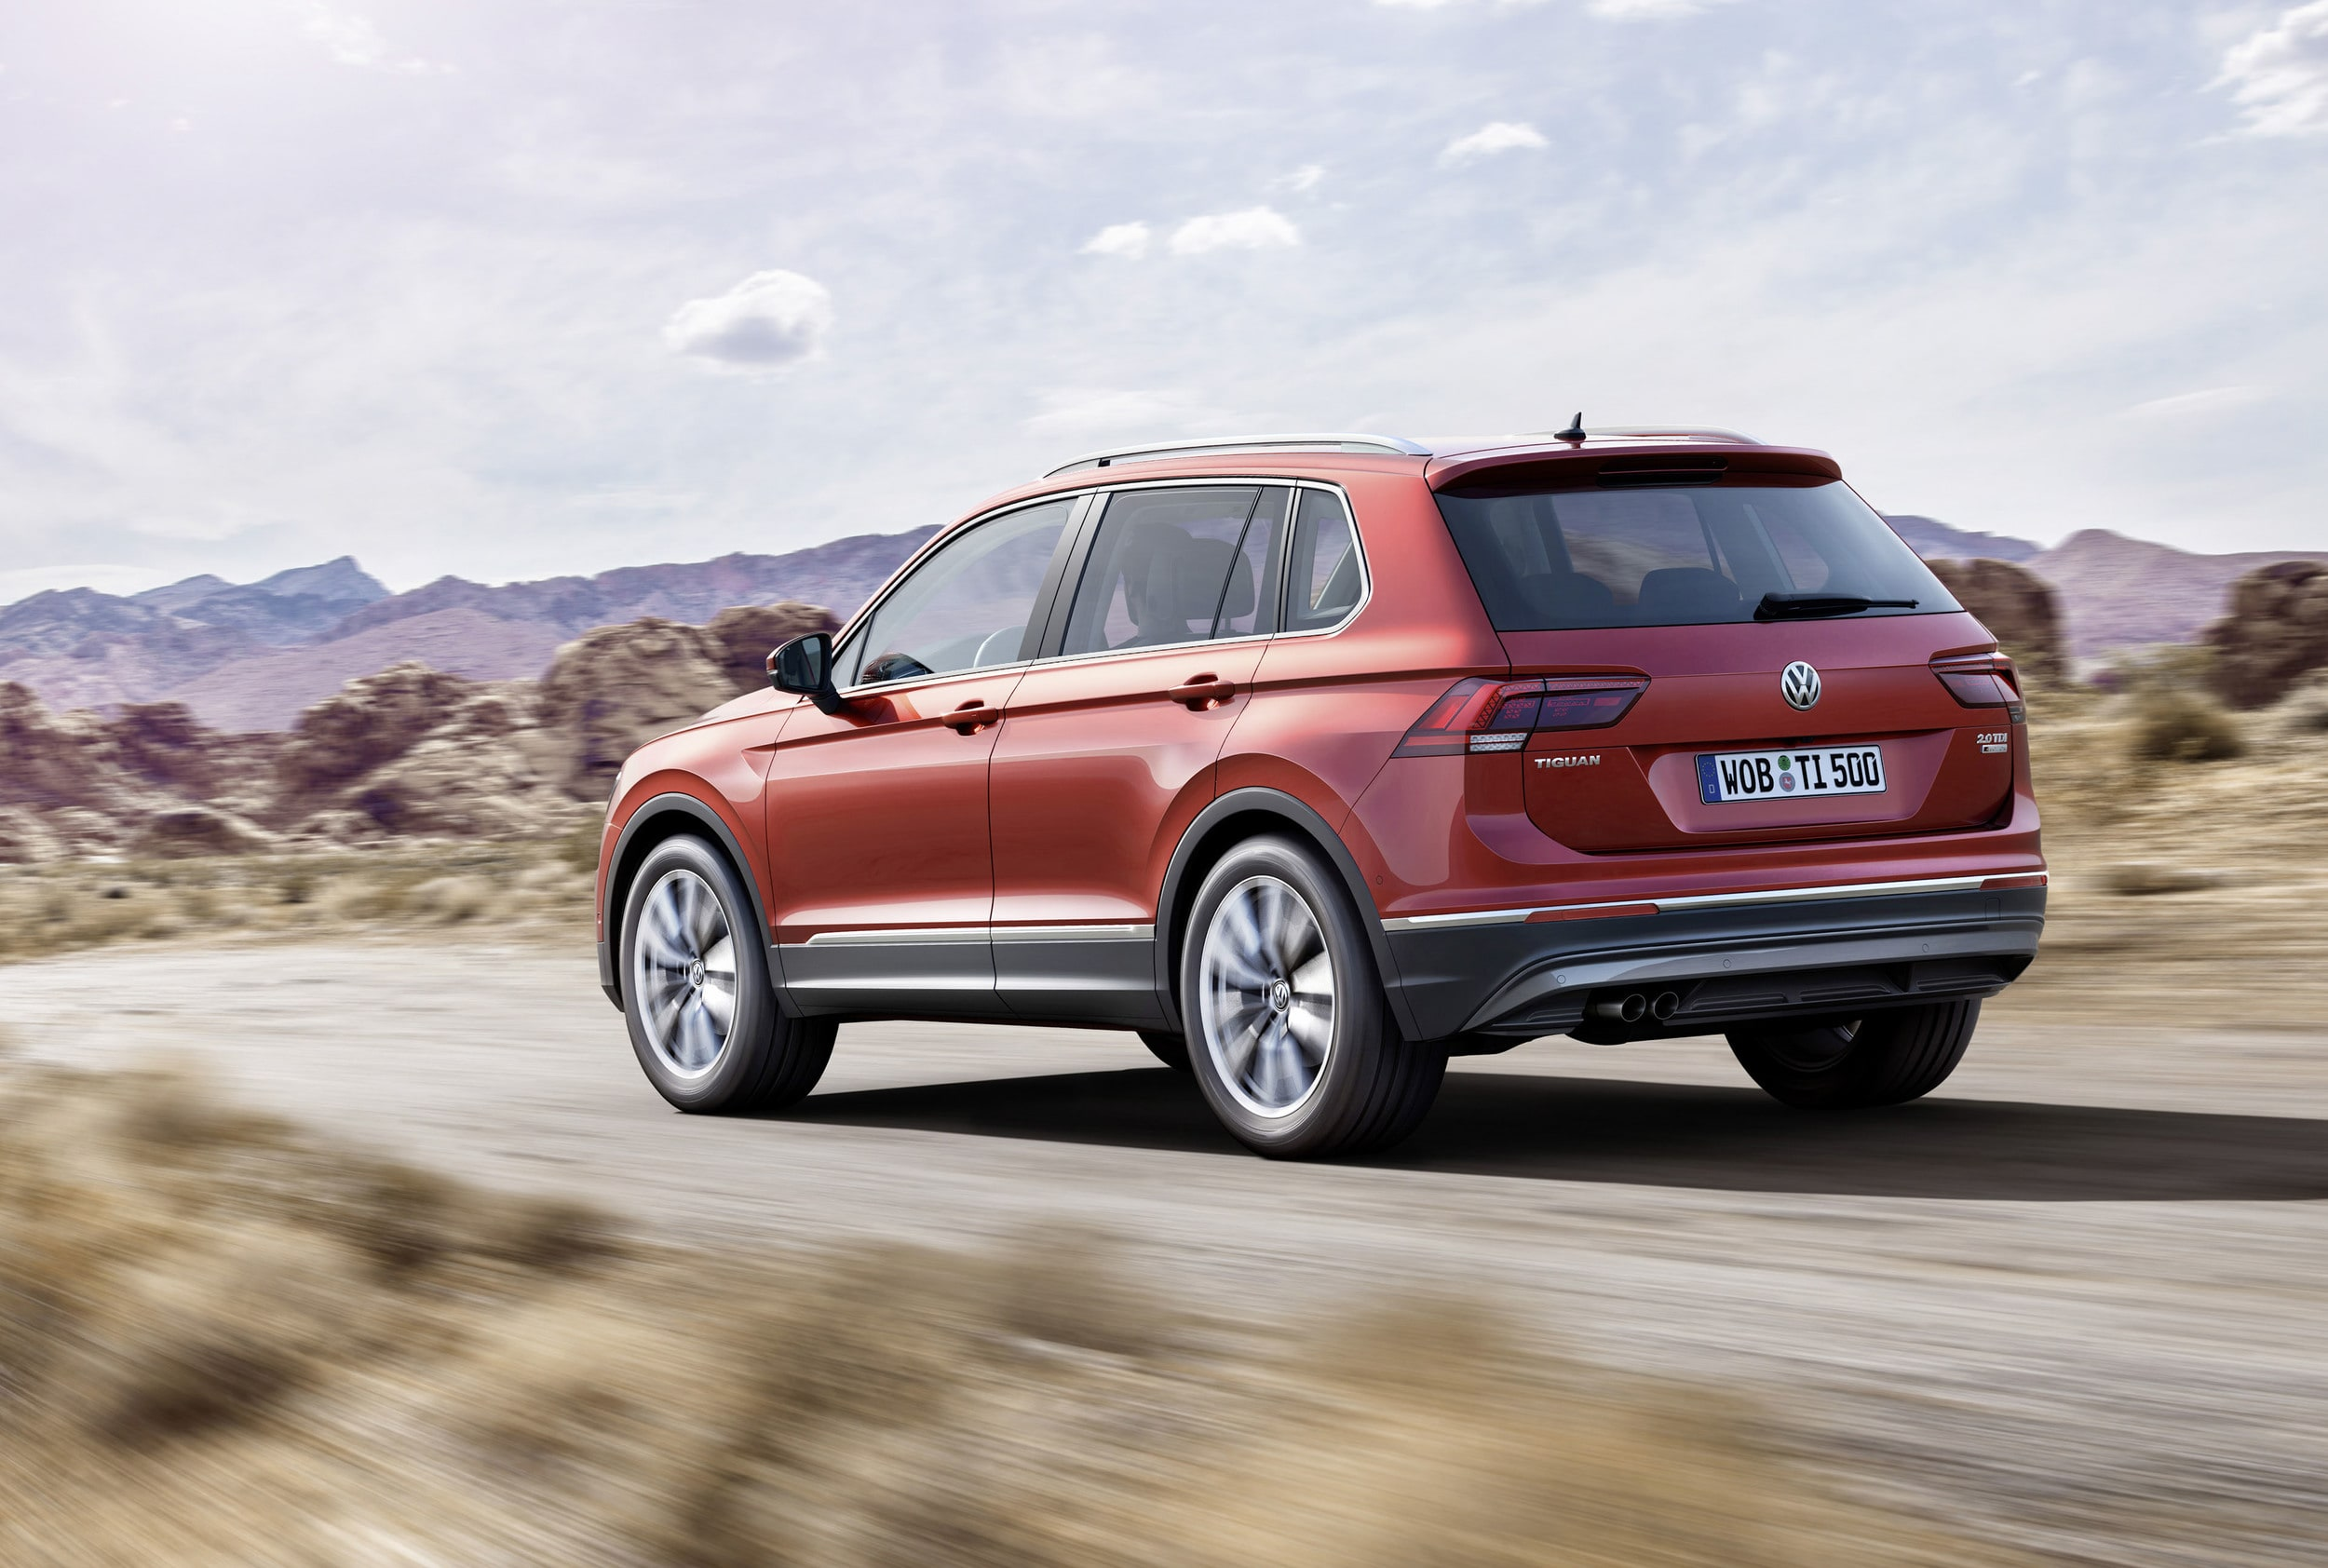 Volkswagen Tiguan 2 HQ wallpapers